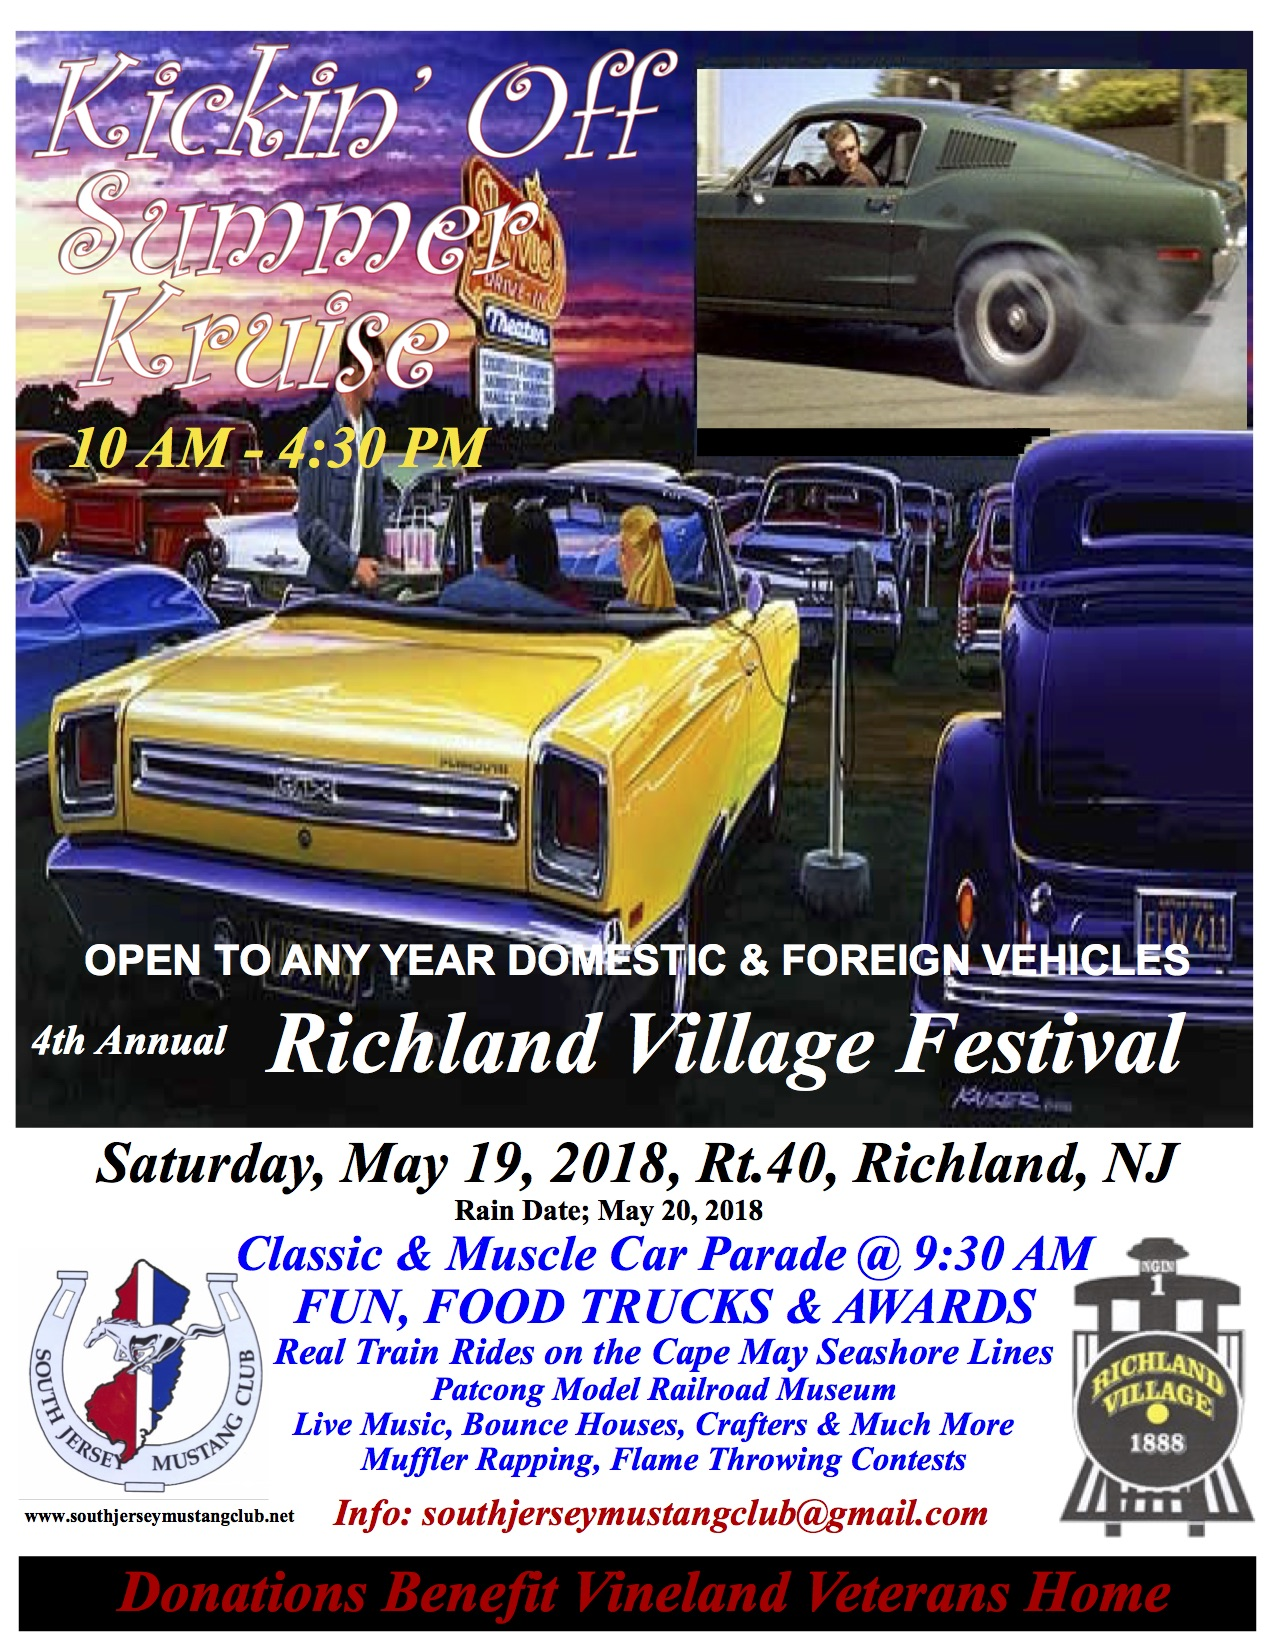 Buena Vista Township Car Shows - Any car shows near me